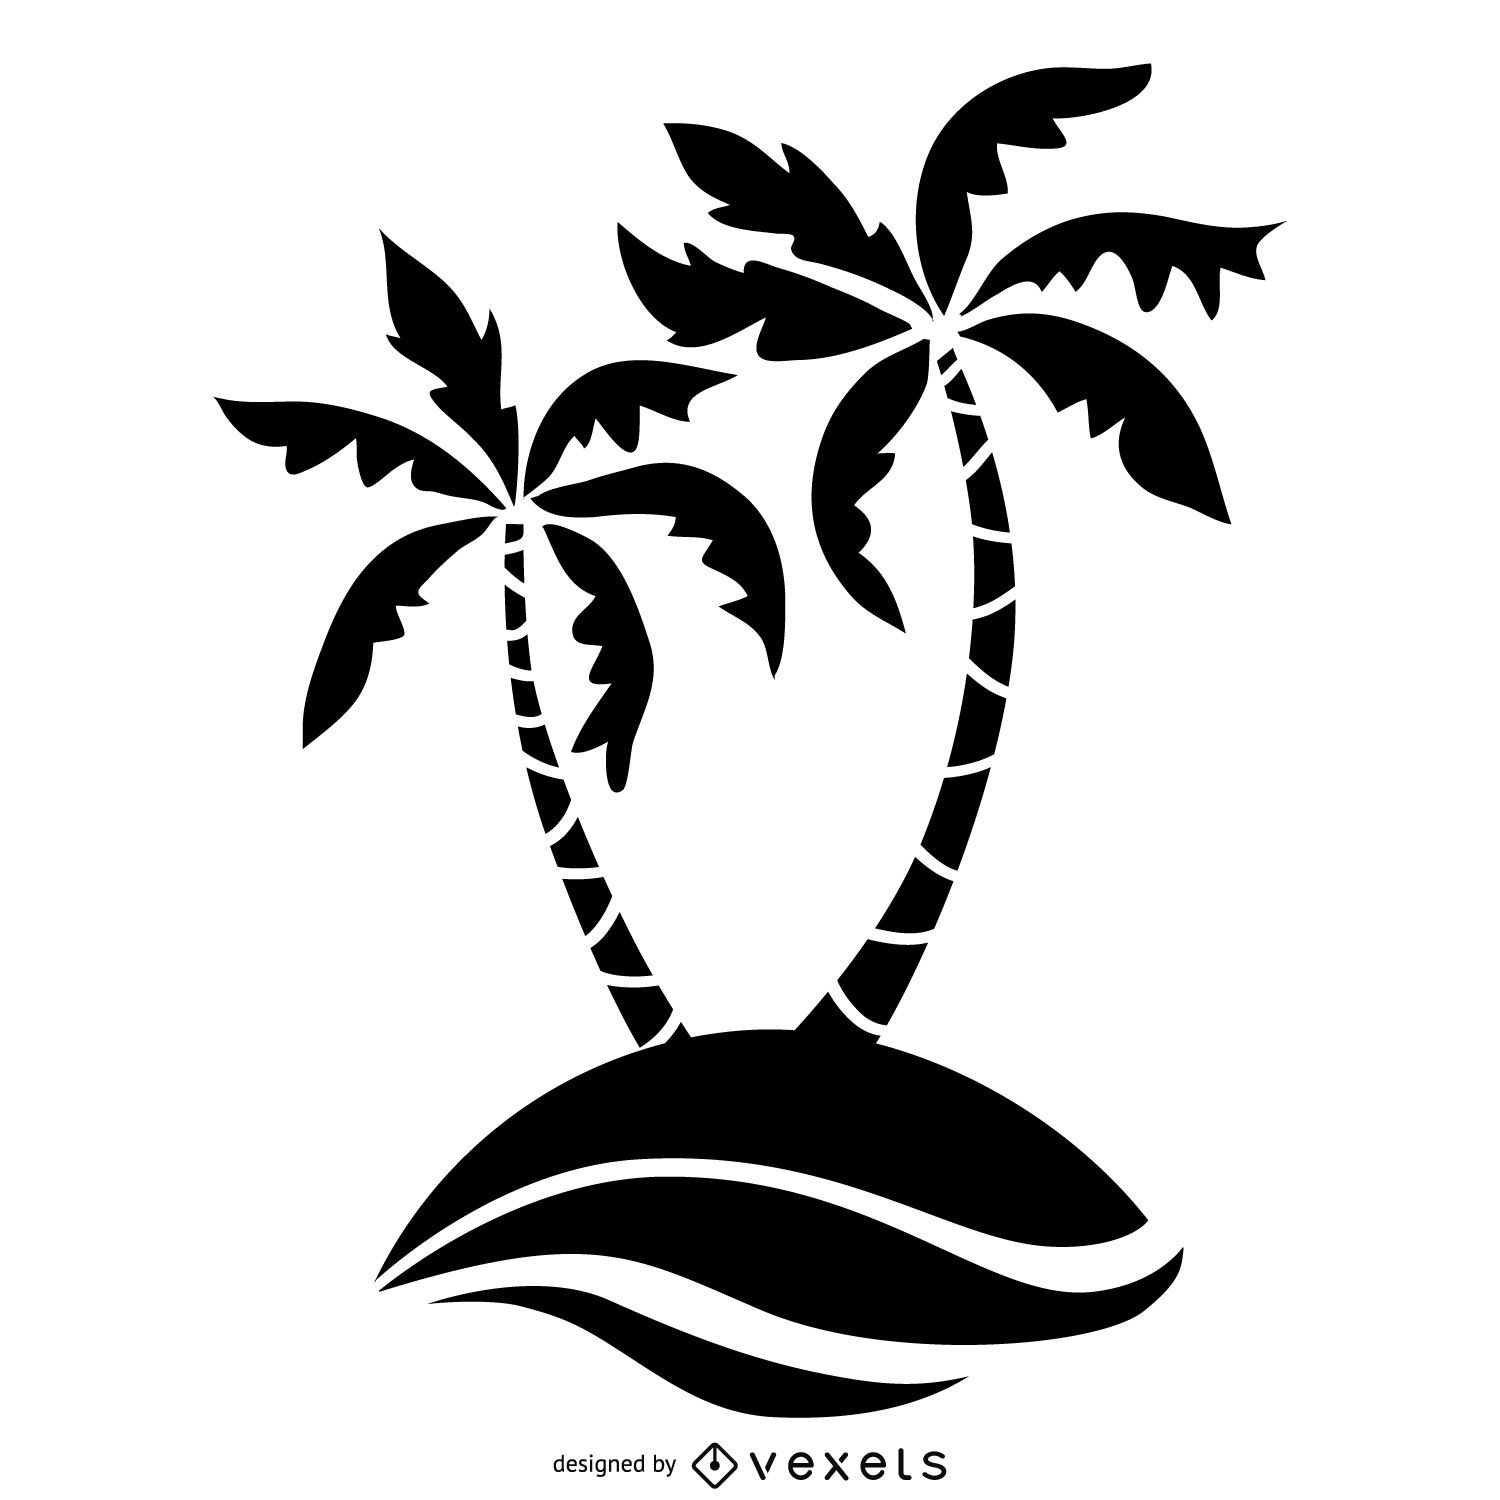 Palm tree silhouette illustration - Vector download